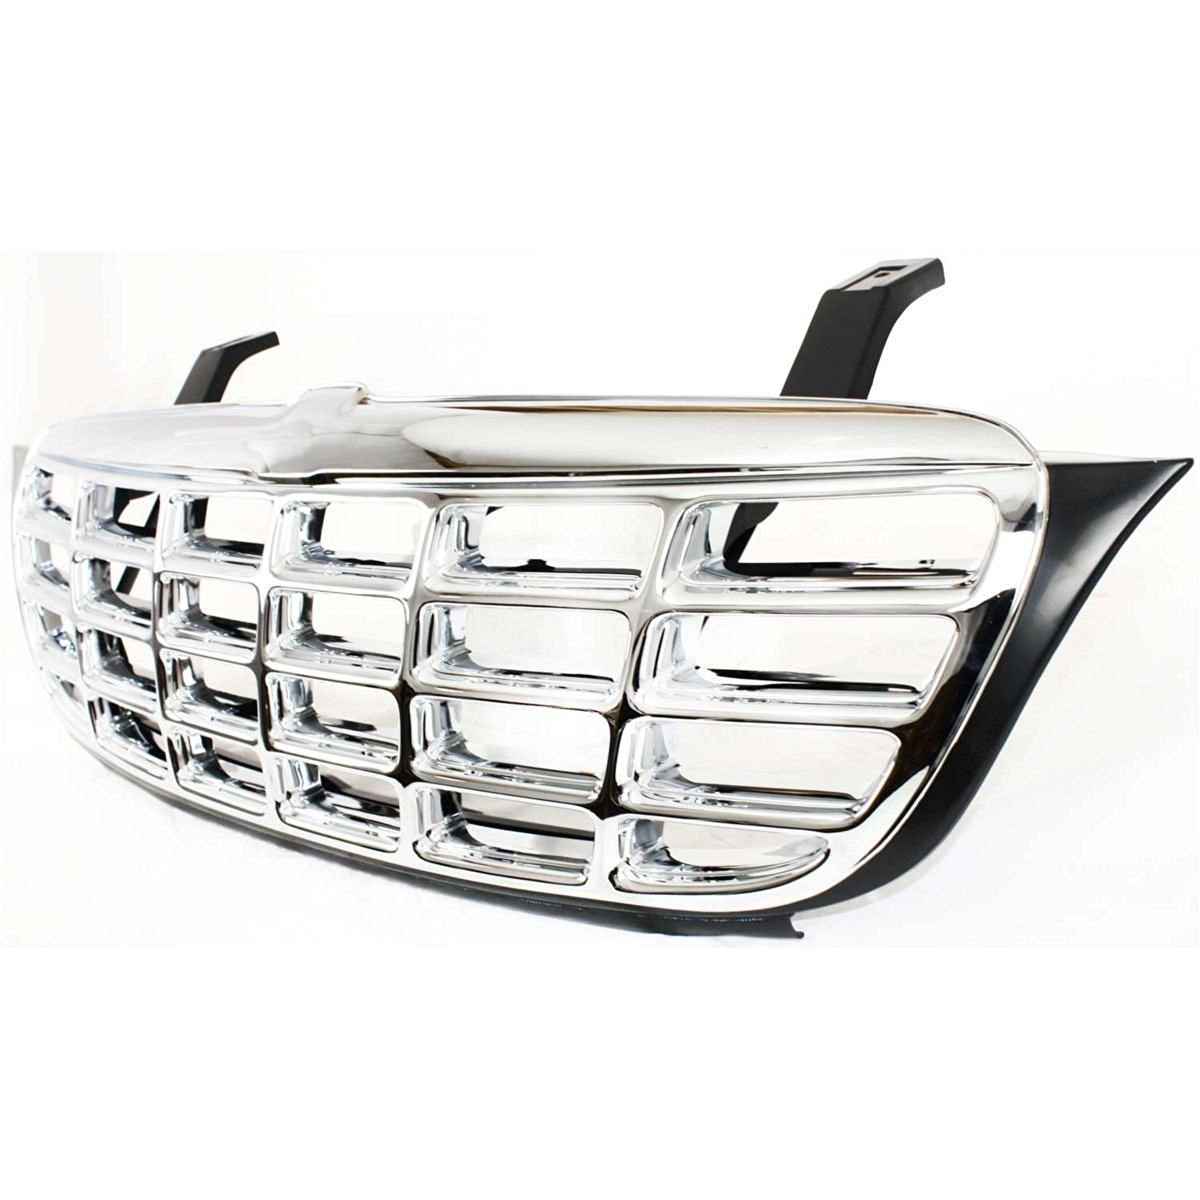 Diften 102-A2630-X01 - New Grille Assembly Grill Chrome Chevrolet Venture 2000 99 98 GM1200435 10440447